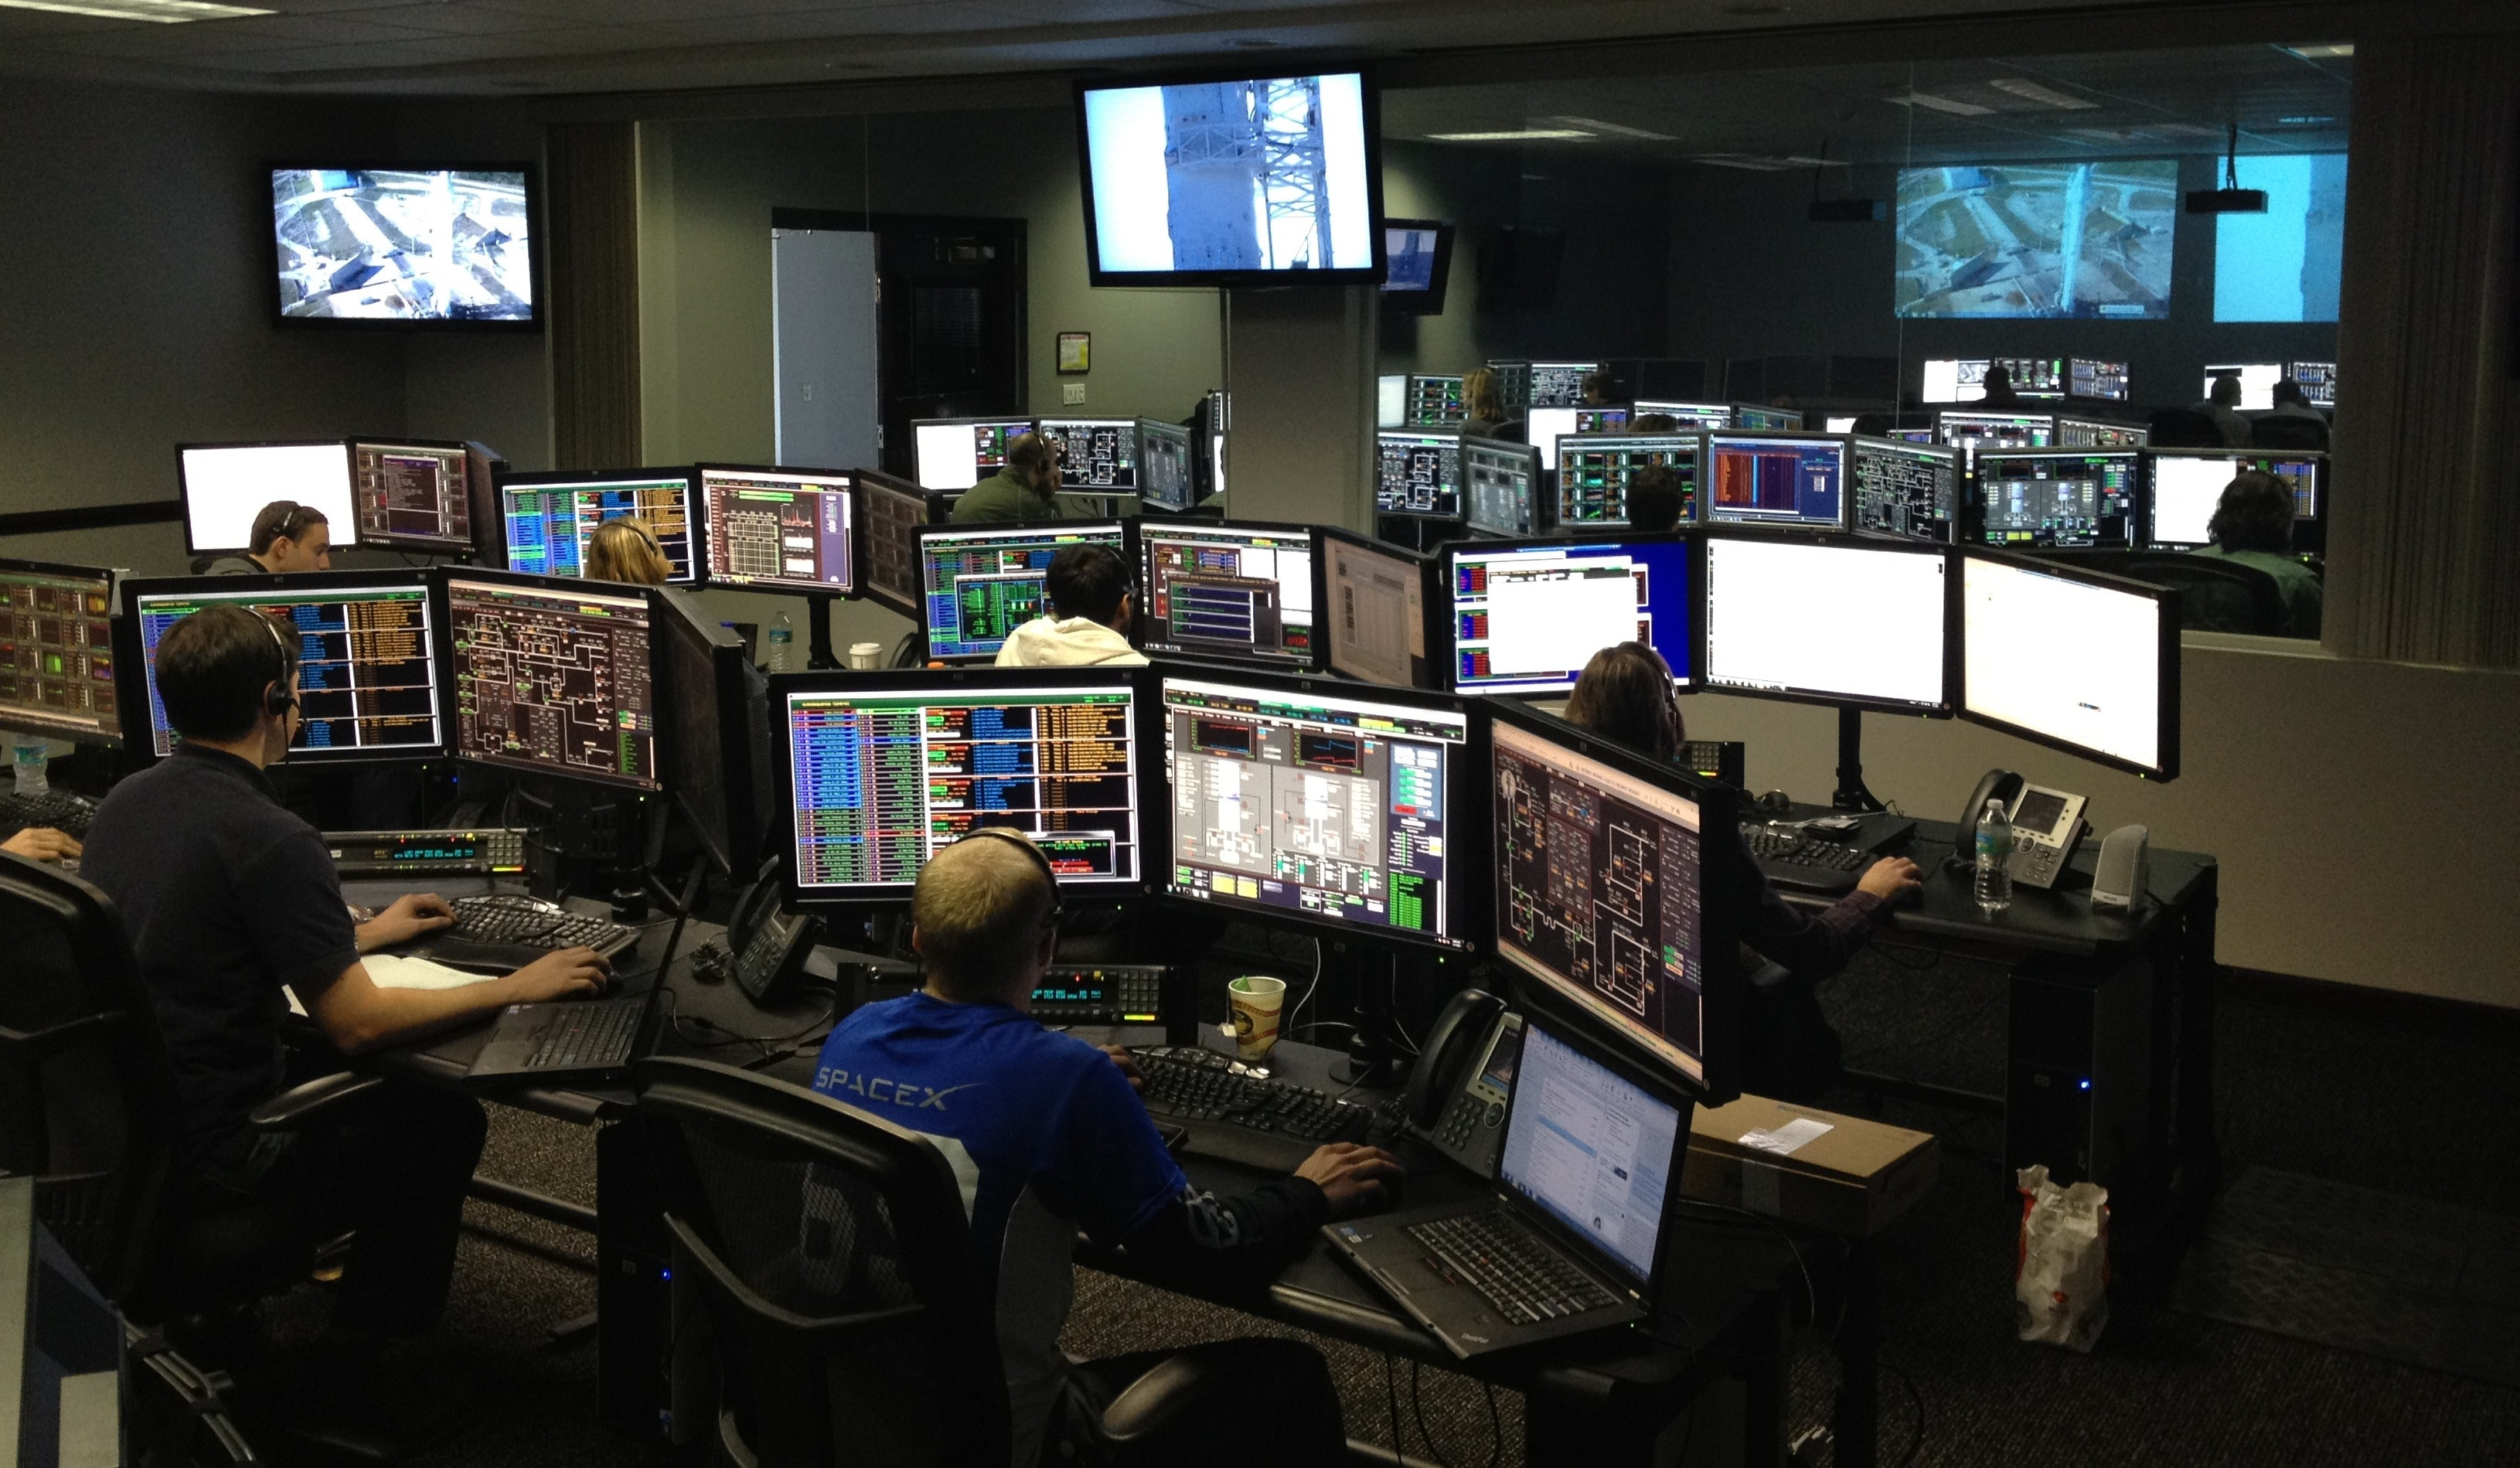 Command and Control Center